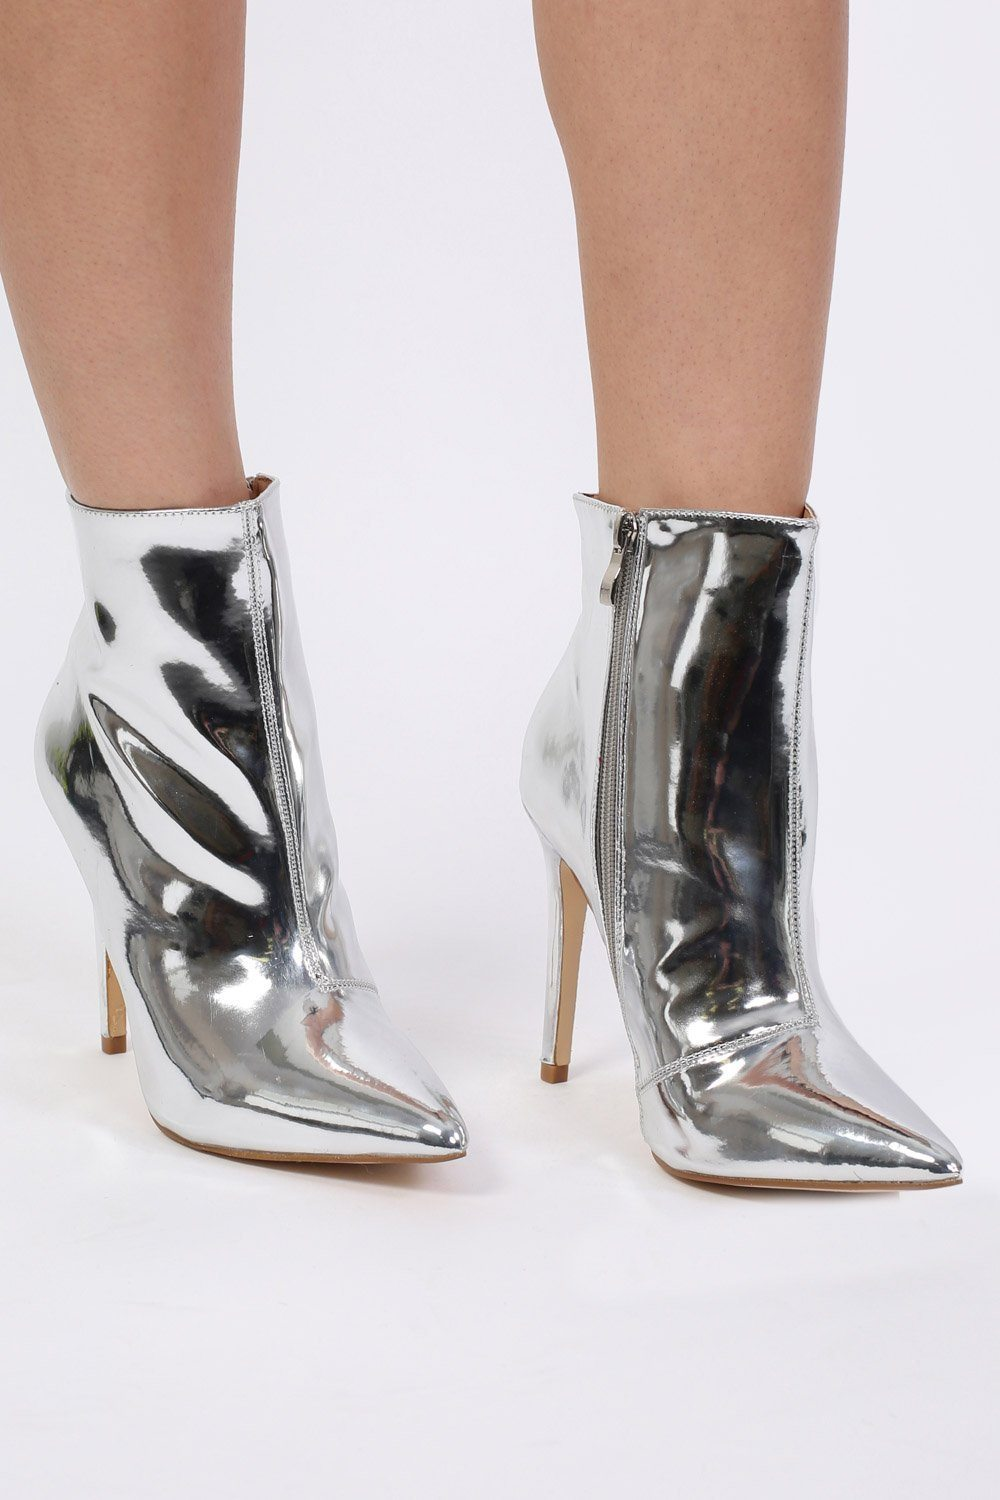 Metallic Pointed Toe Stiletto High Heel Ankle Boots in Silver 0